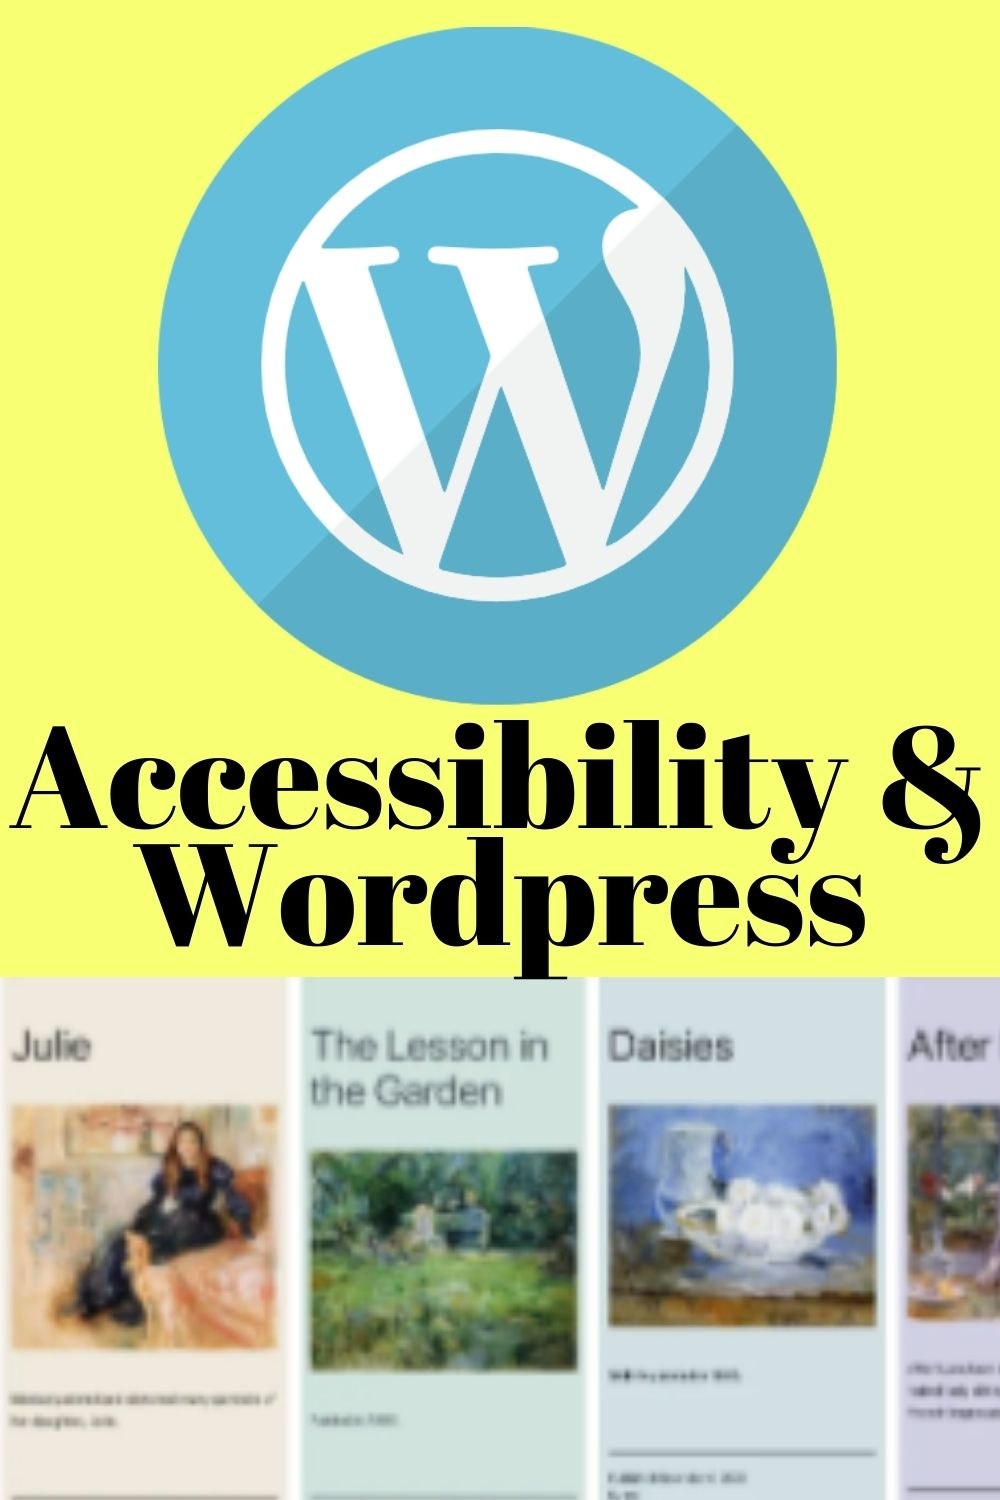 The recent update of WordPress Version 5.6.1 focuses on Accessibility and the default theme now has Accessibility at it's core with WCAG 2.1 at level AAA [ID: squares of new twenty twenty one theme pastel color options as well as black and white options]